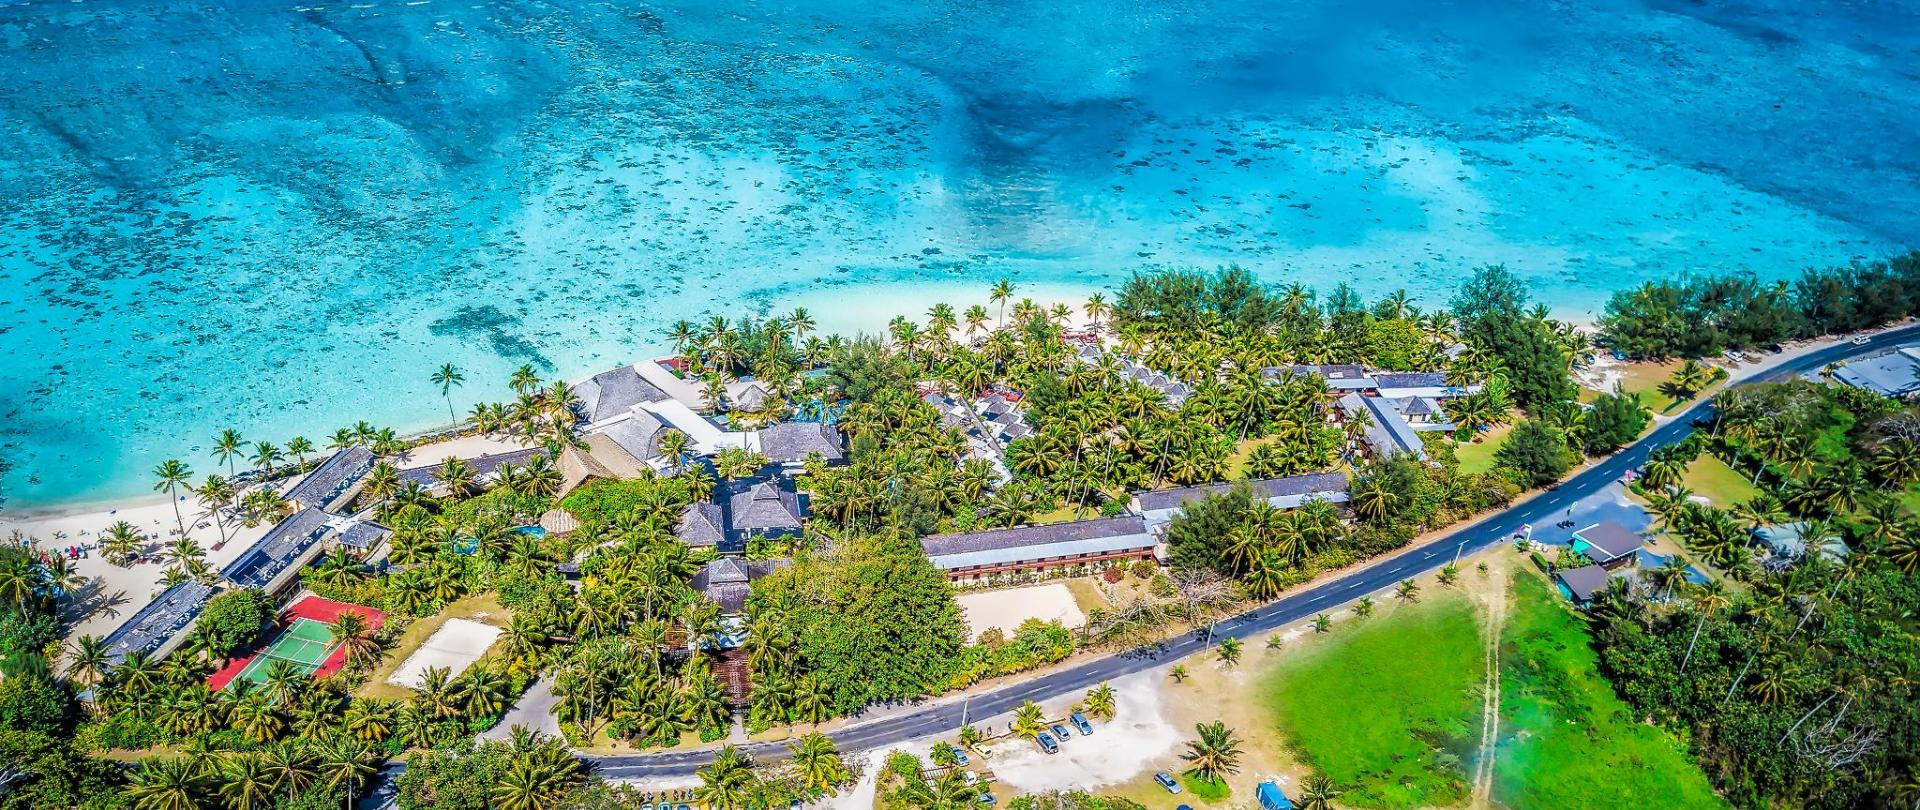 Das Rarotongan Beach Resort & Spa